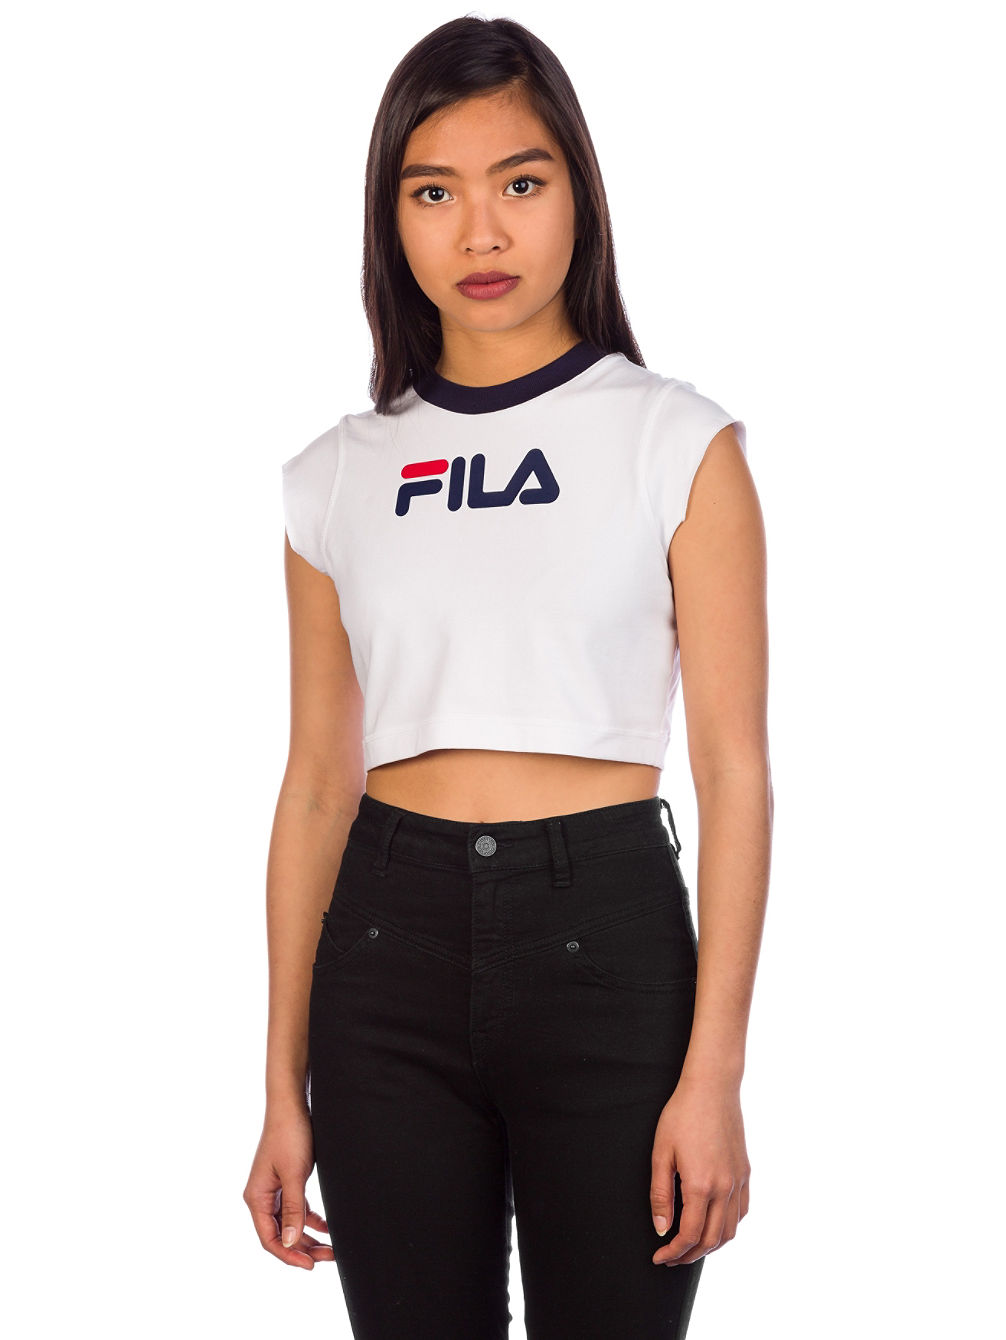 Archive Crop Tank Top